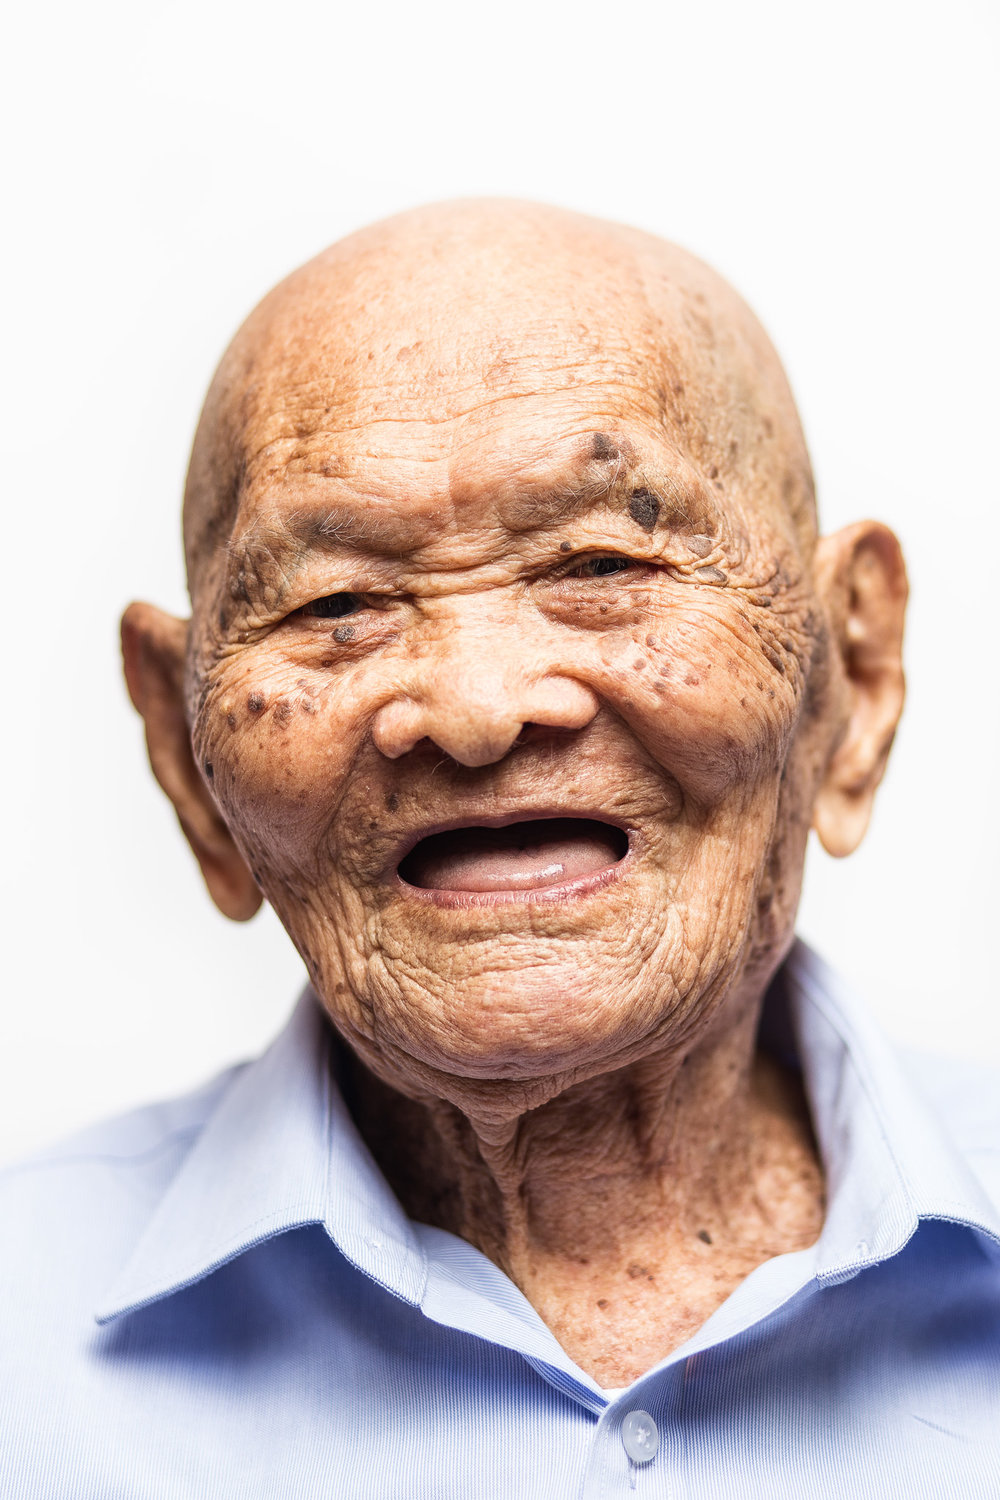 zainal-zainal-studio-centenarians-care-duke-nus-singapore-photographer-17.jpg